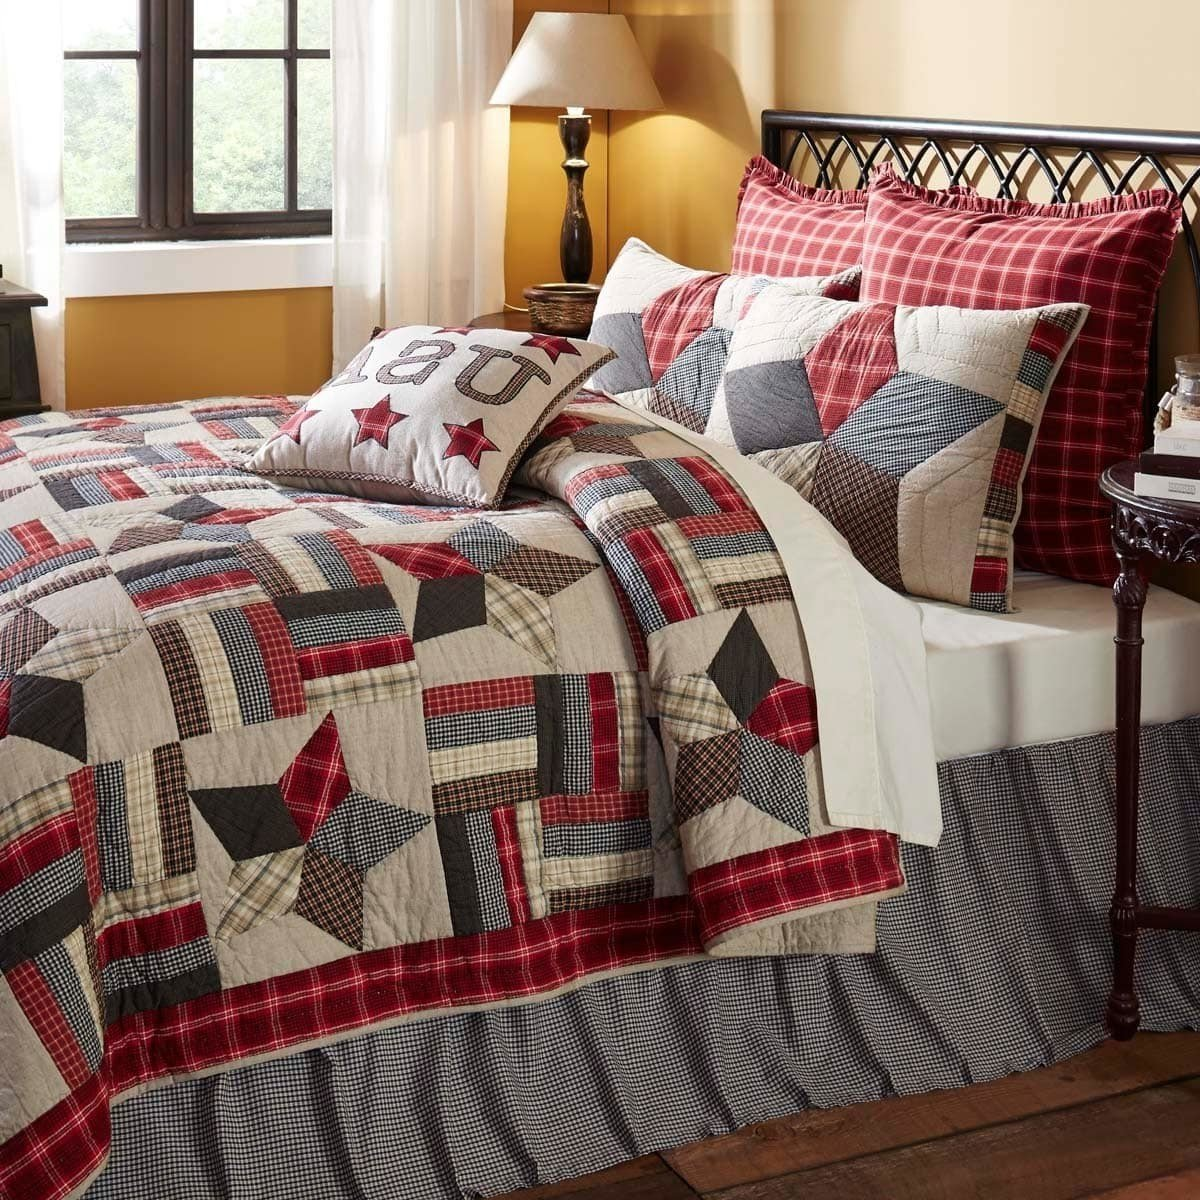 3 Piece Grey Black White Cal King Quilt Set, Patchwork Pattern Themed Bedding Star Plaid Rustic Western Shabby Chic Americana Tan Khaki Navy Blue Tartan Gray, Cotton